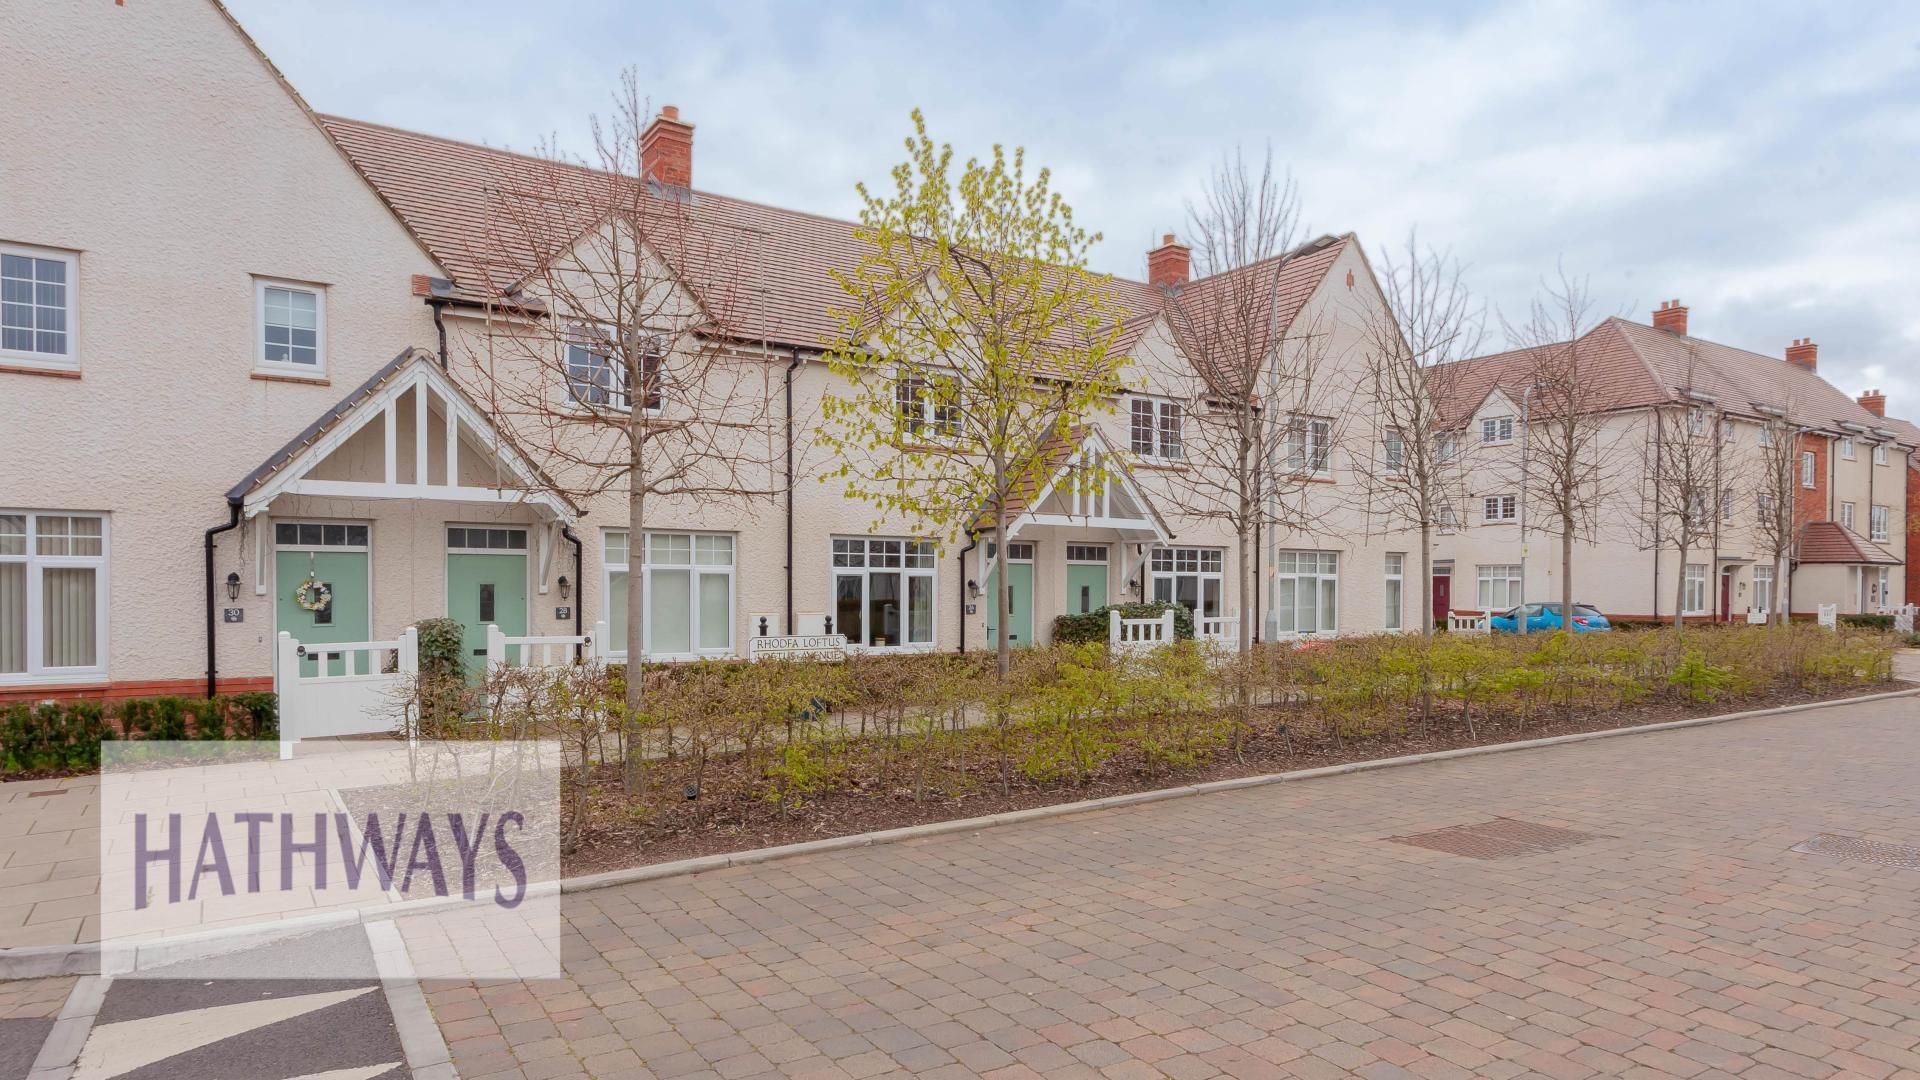 2 bed house for sale in Loftus Avenue, NP19